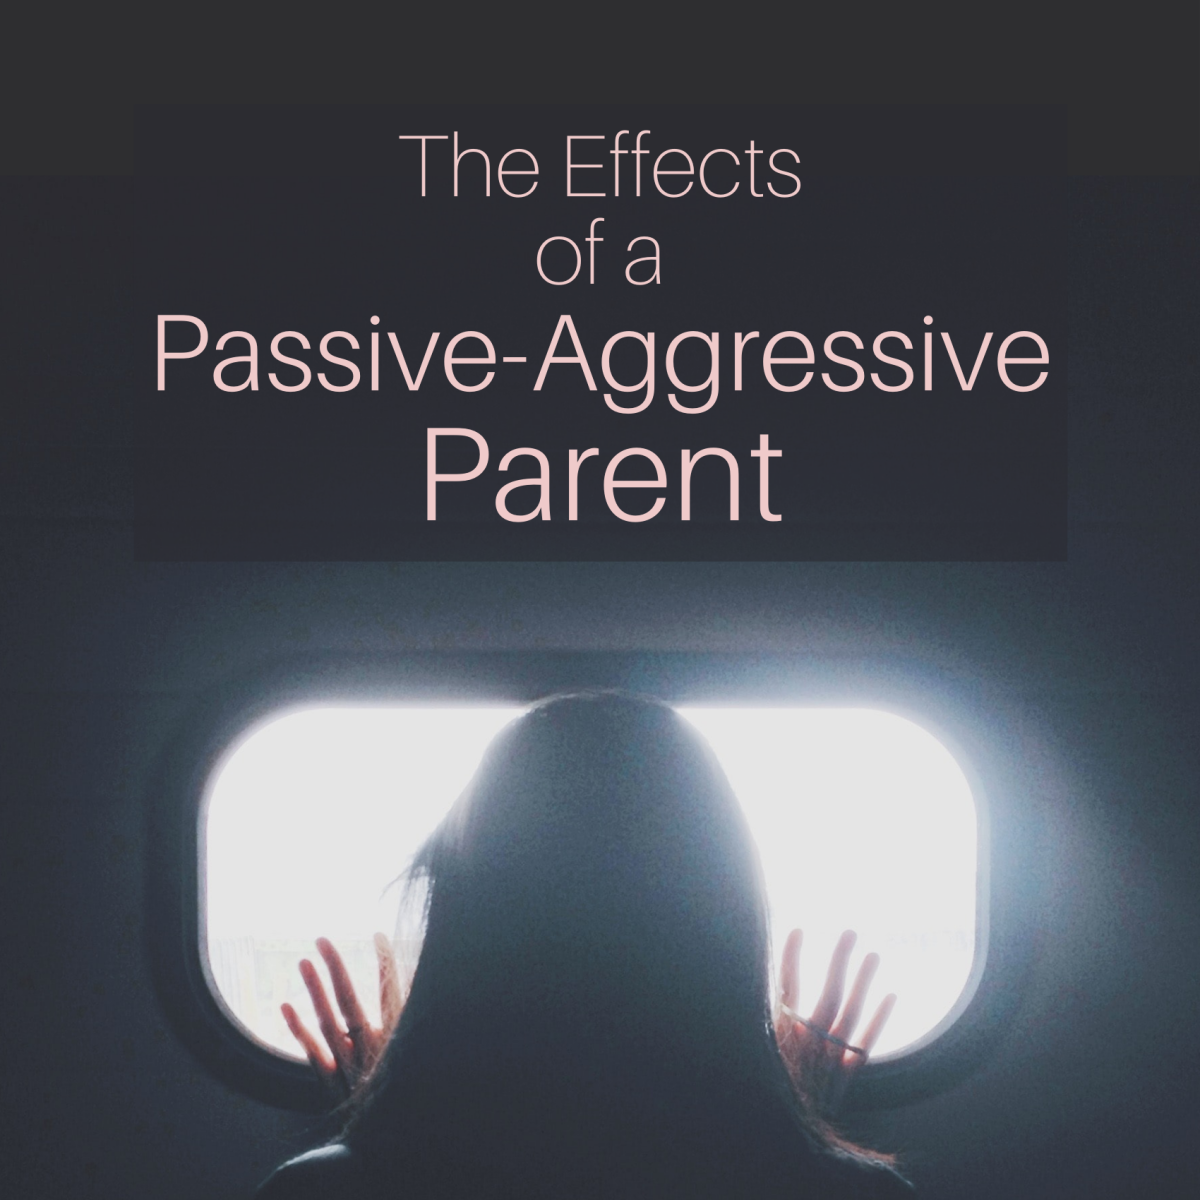 The adult children of passive aggressive parents may struggle with communicating directly, trusting others, and expressing anger.